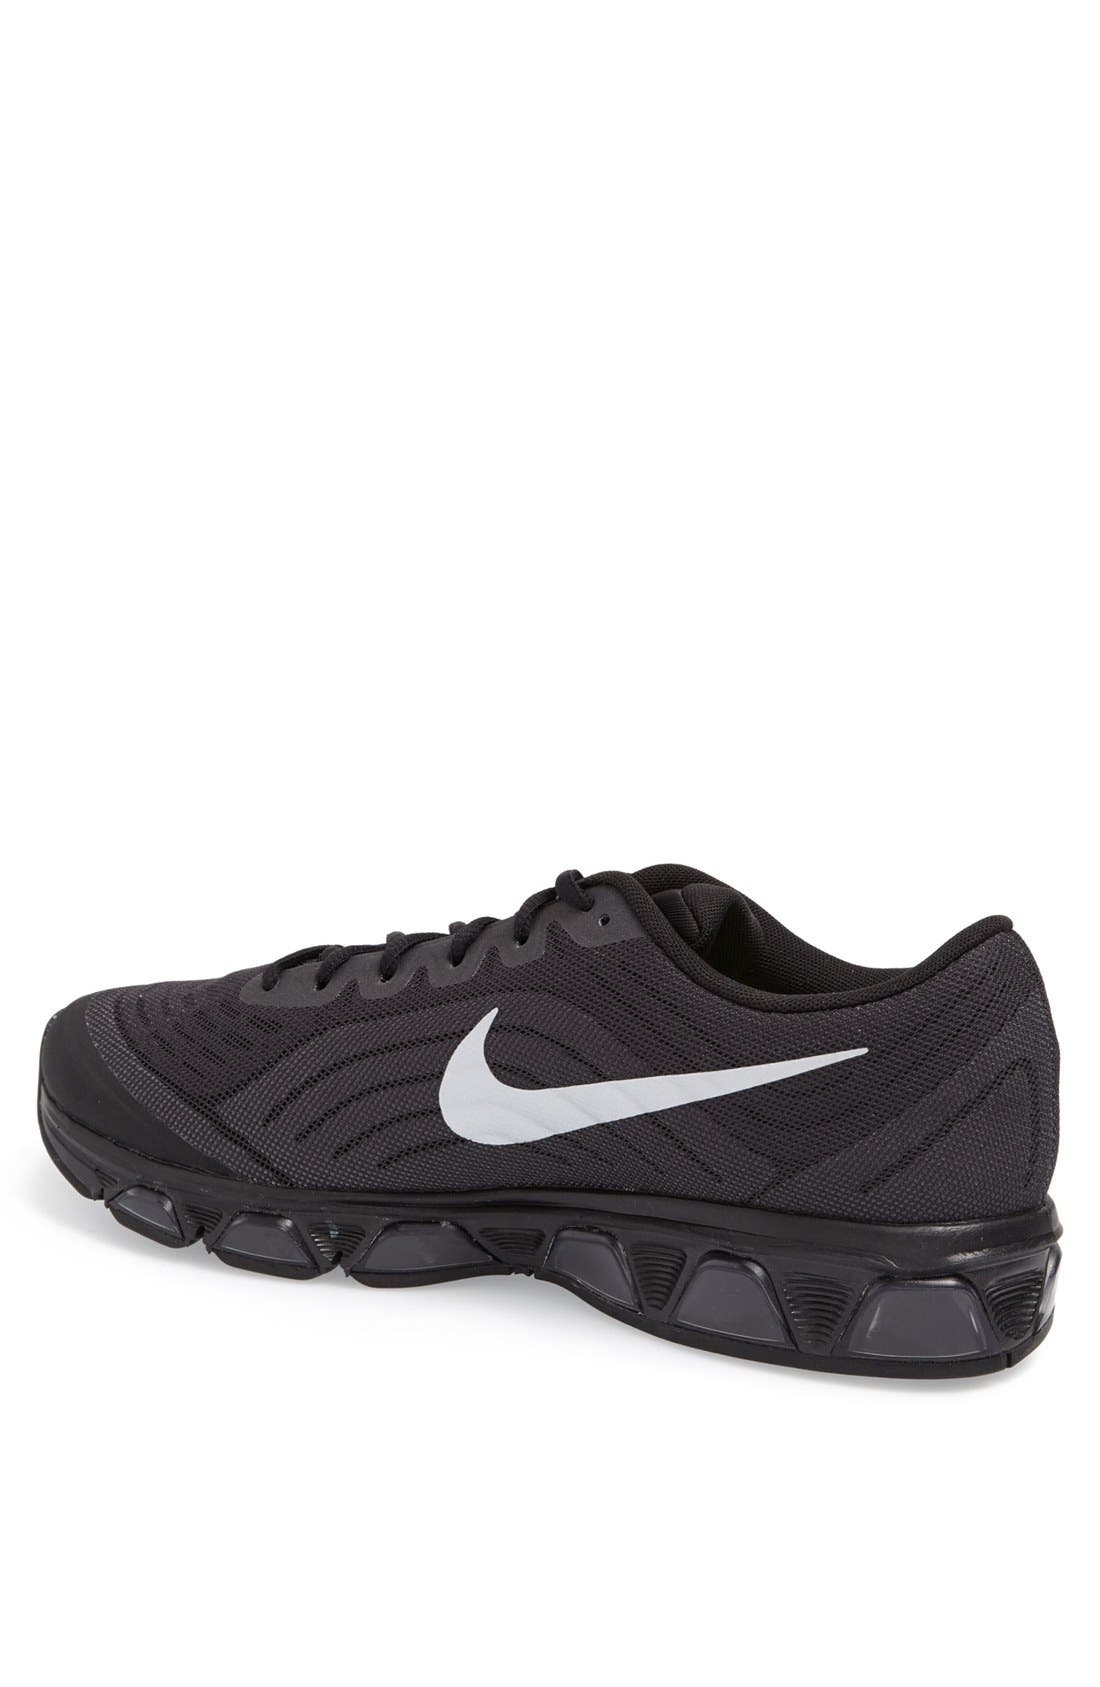 'Air Max Tailwind 6' Running Shoe,                             Alternate thumbnail 3, color,                             001